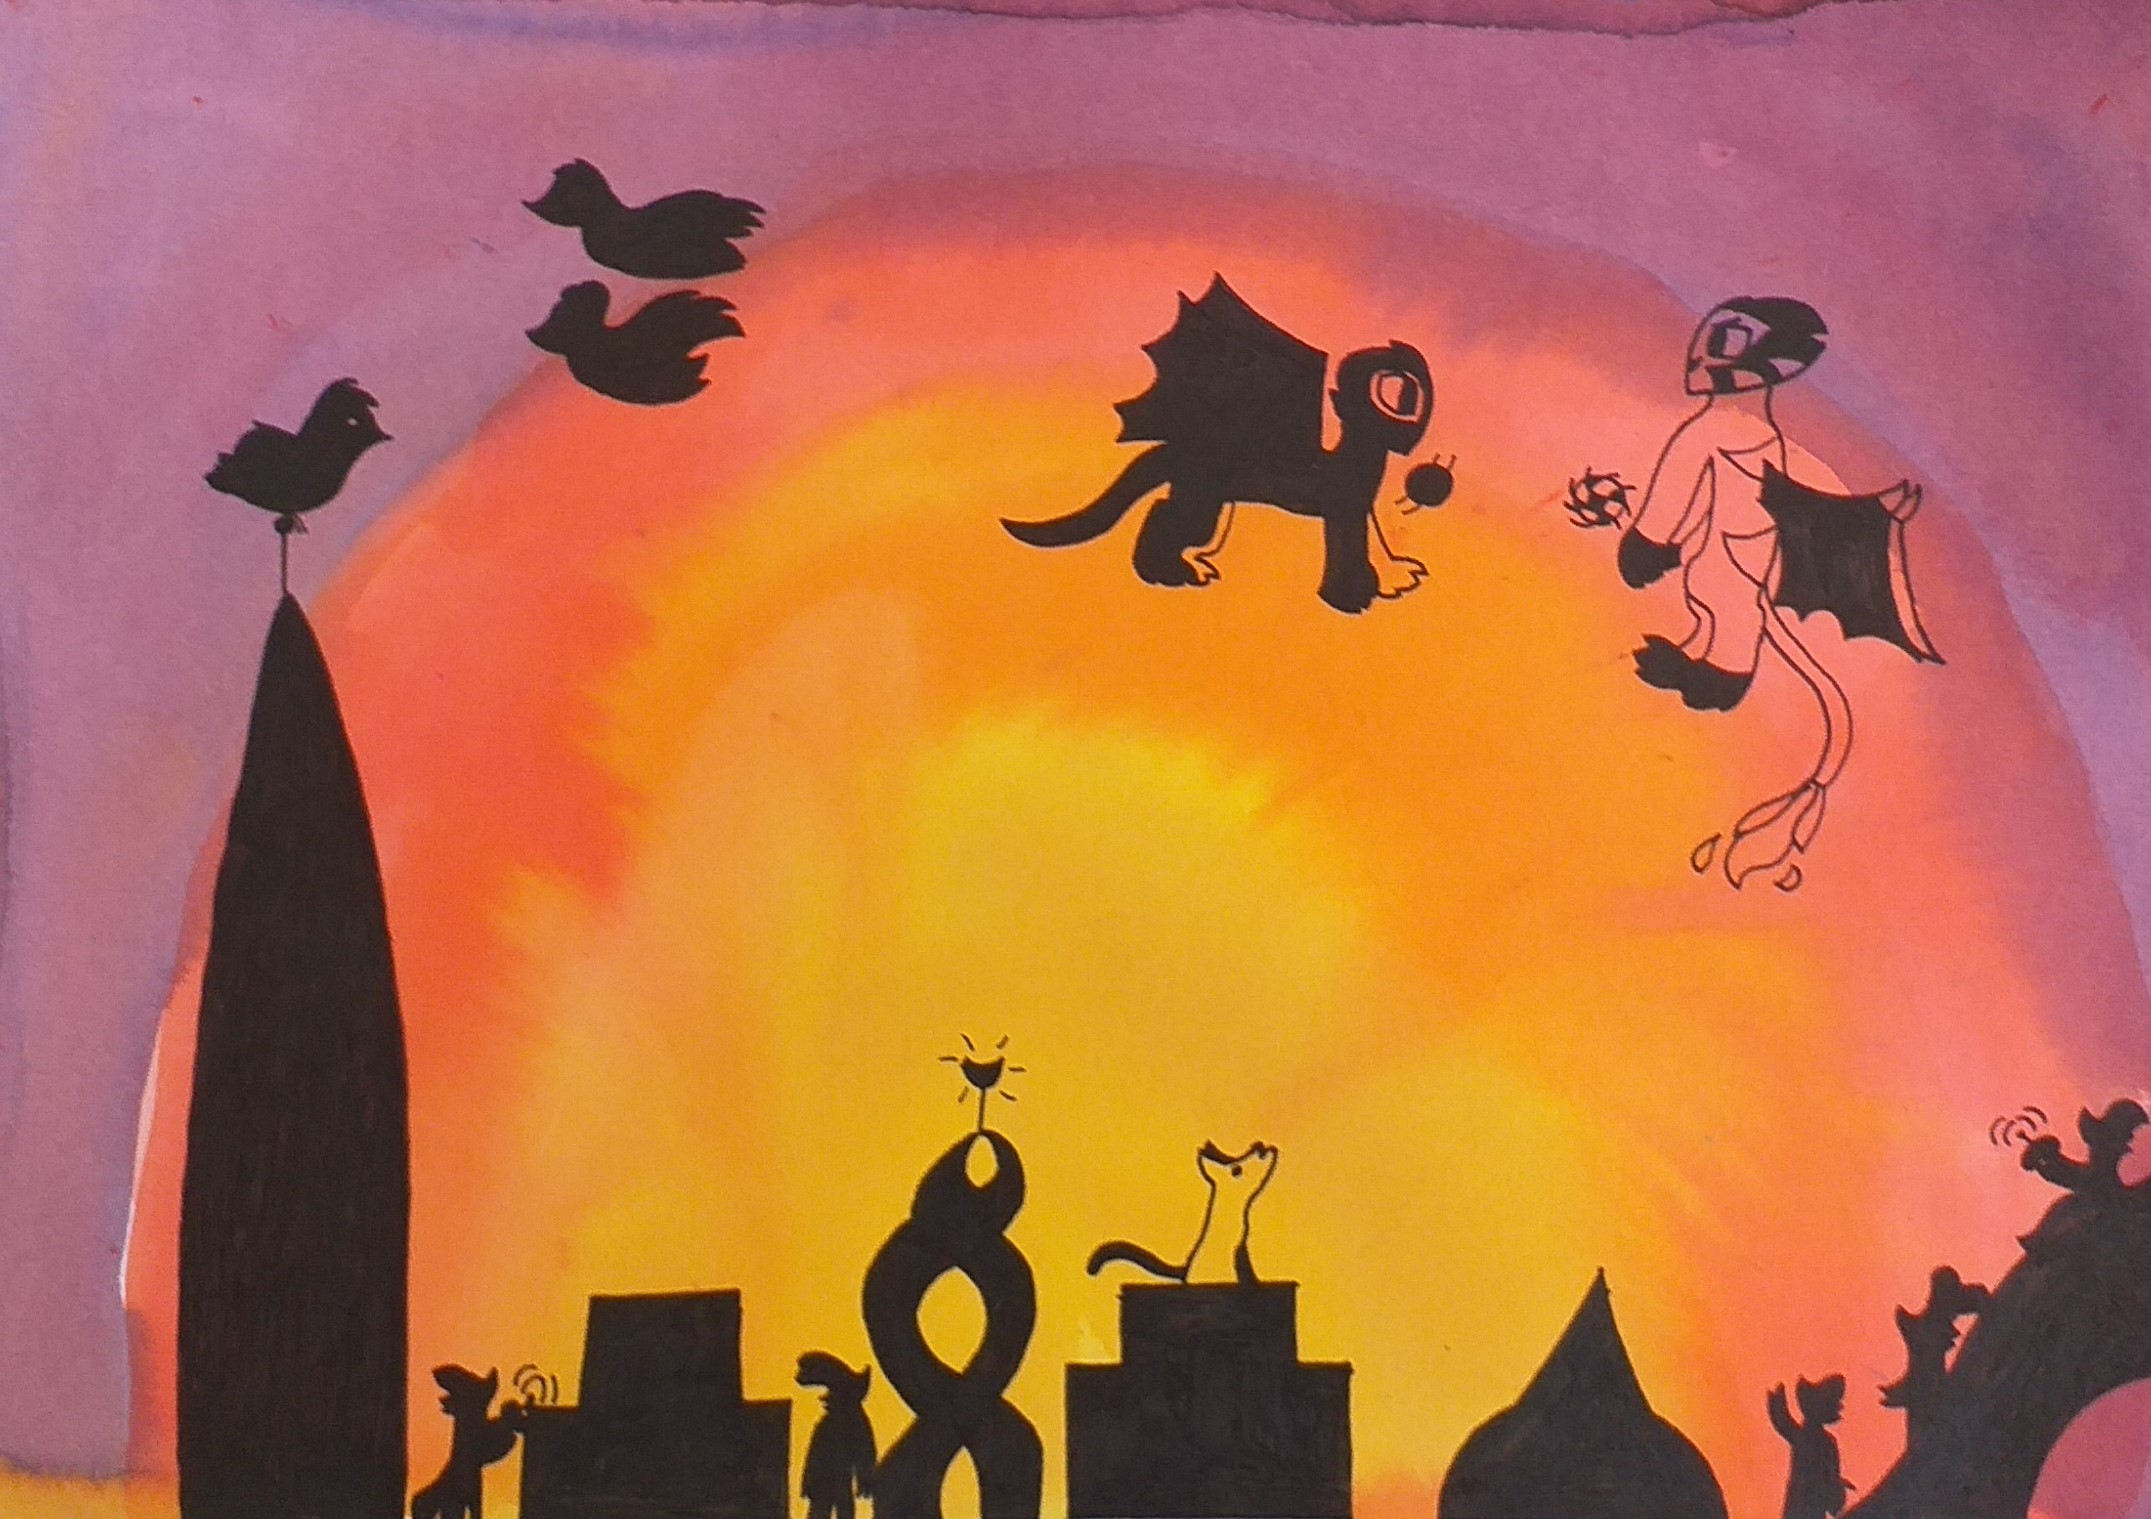 Art work created at Art classes for kids at Kidderminster West Midlands